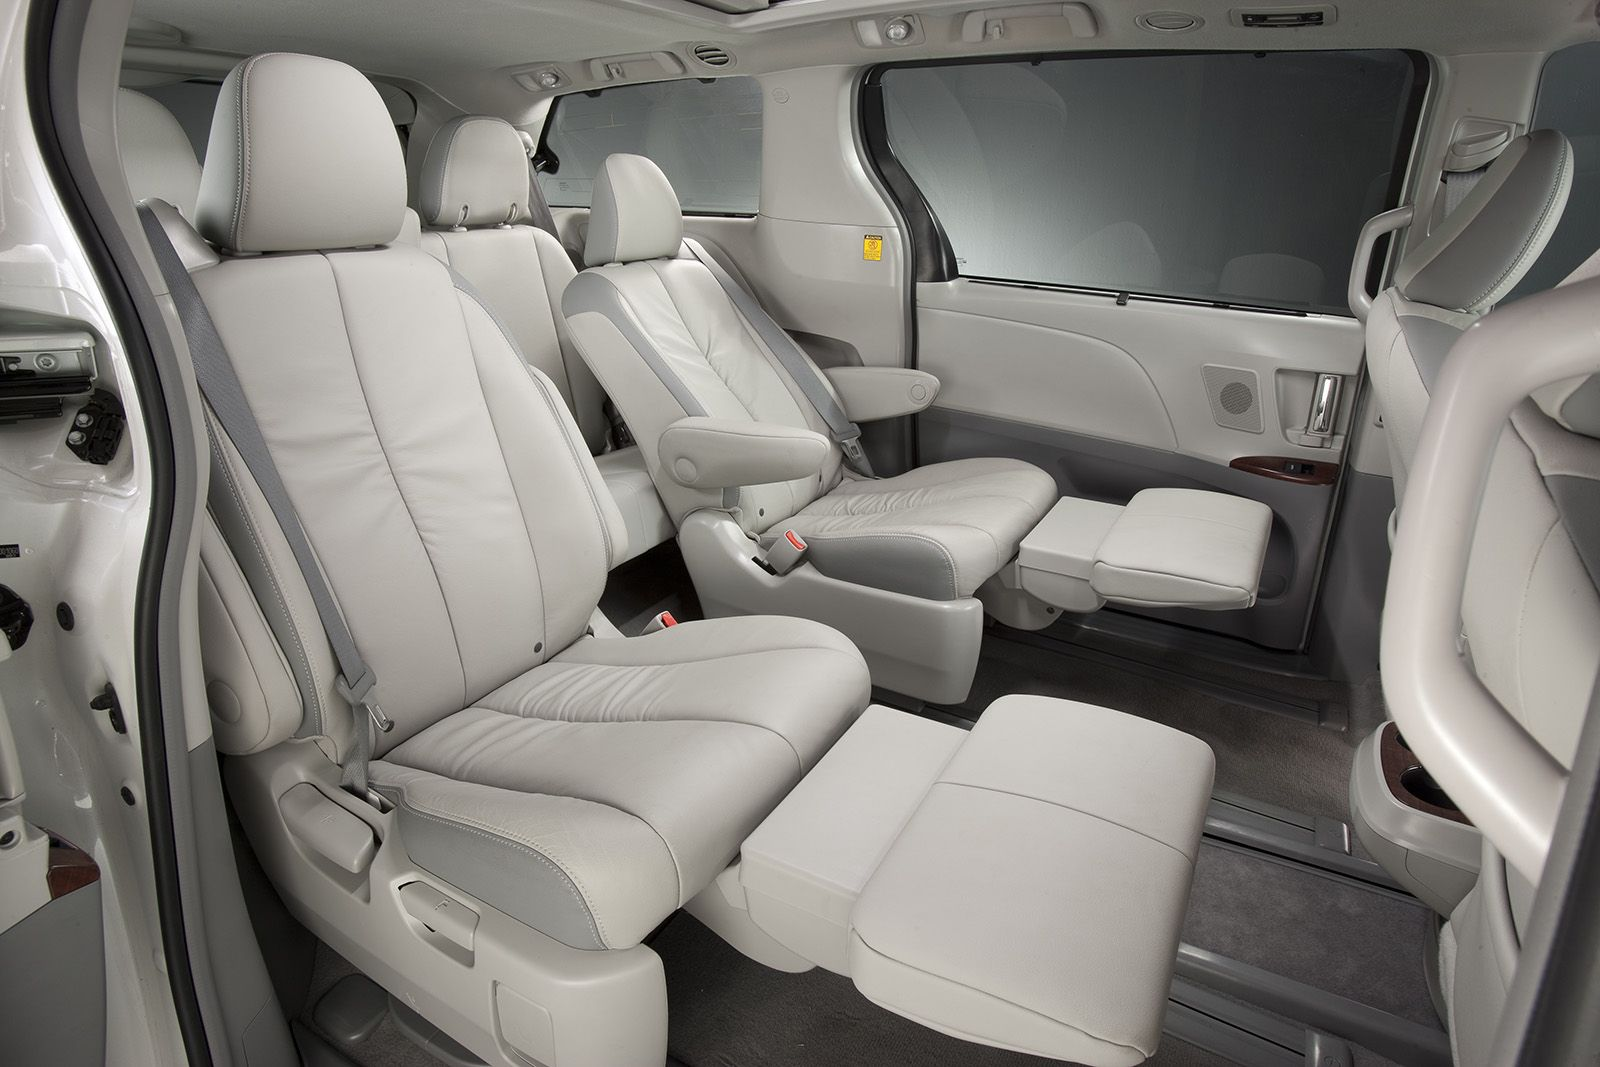 Sienna Midrow Seating I Want A Front Passenger Seat With A